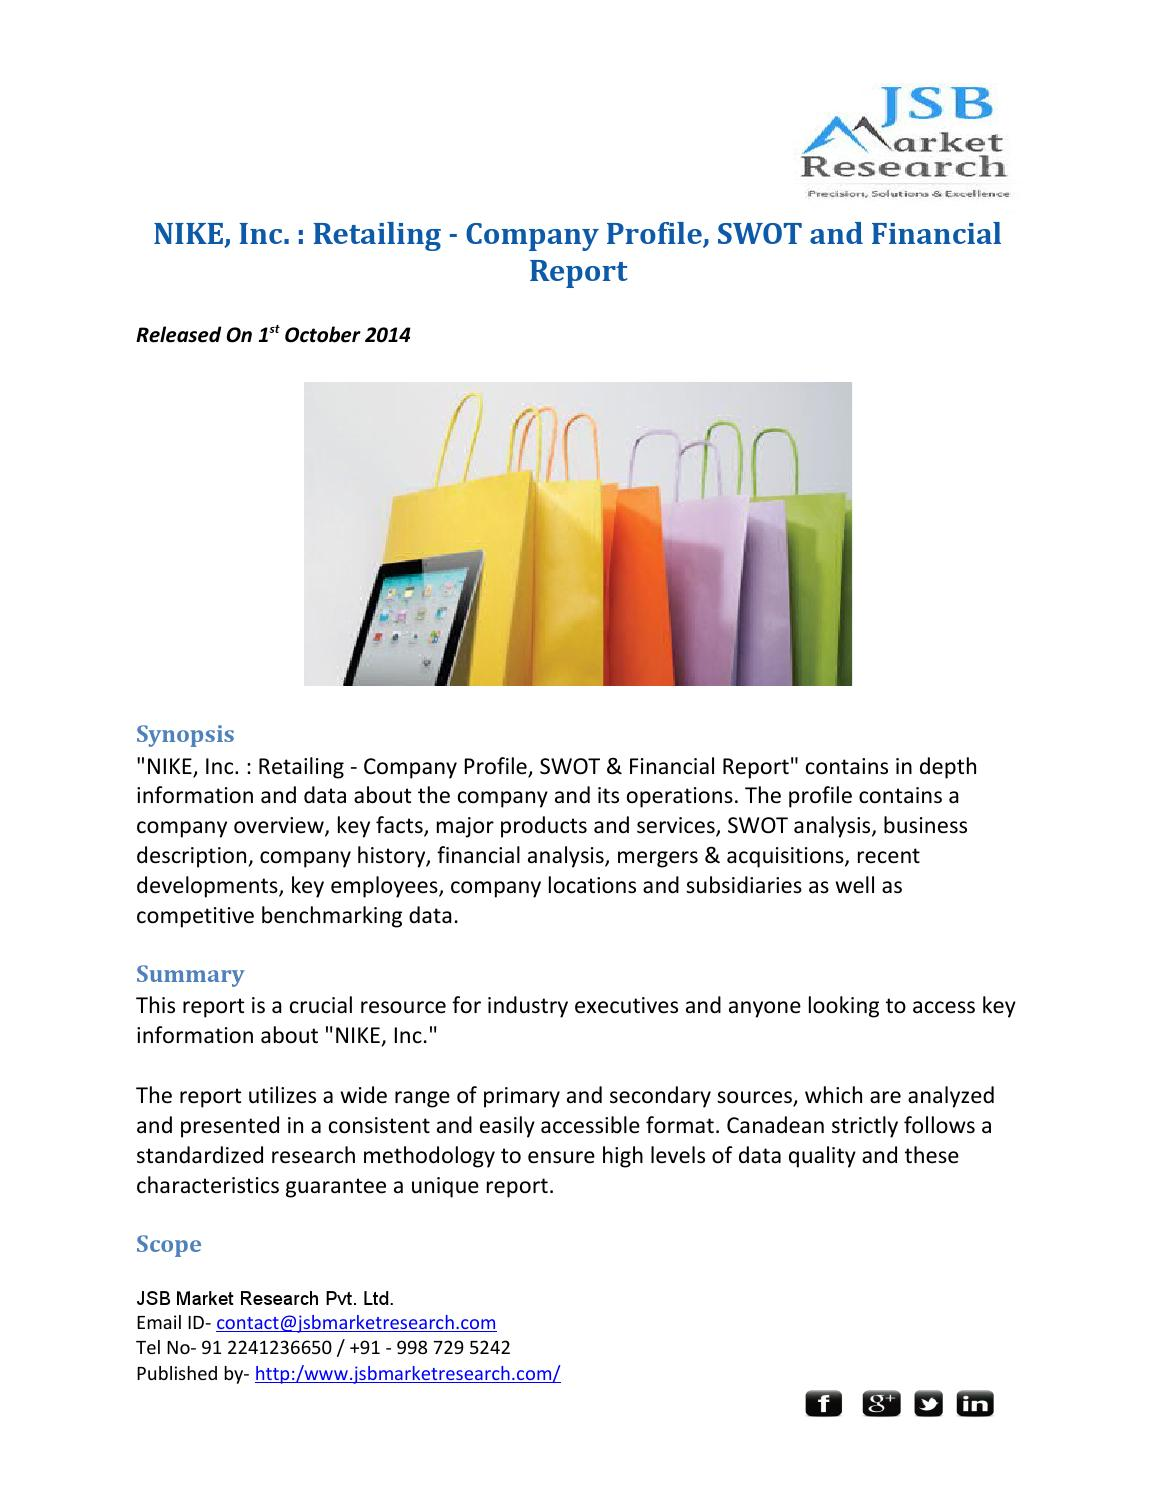 Cena Extraer Serpiente  JSB Market Research : NIKE, Inc. : Retailing - Company Profile, SWOT and  Financial Report by smithphillips - issuu